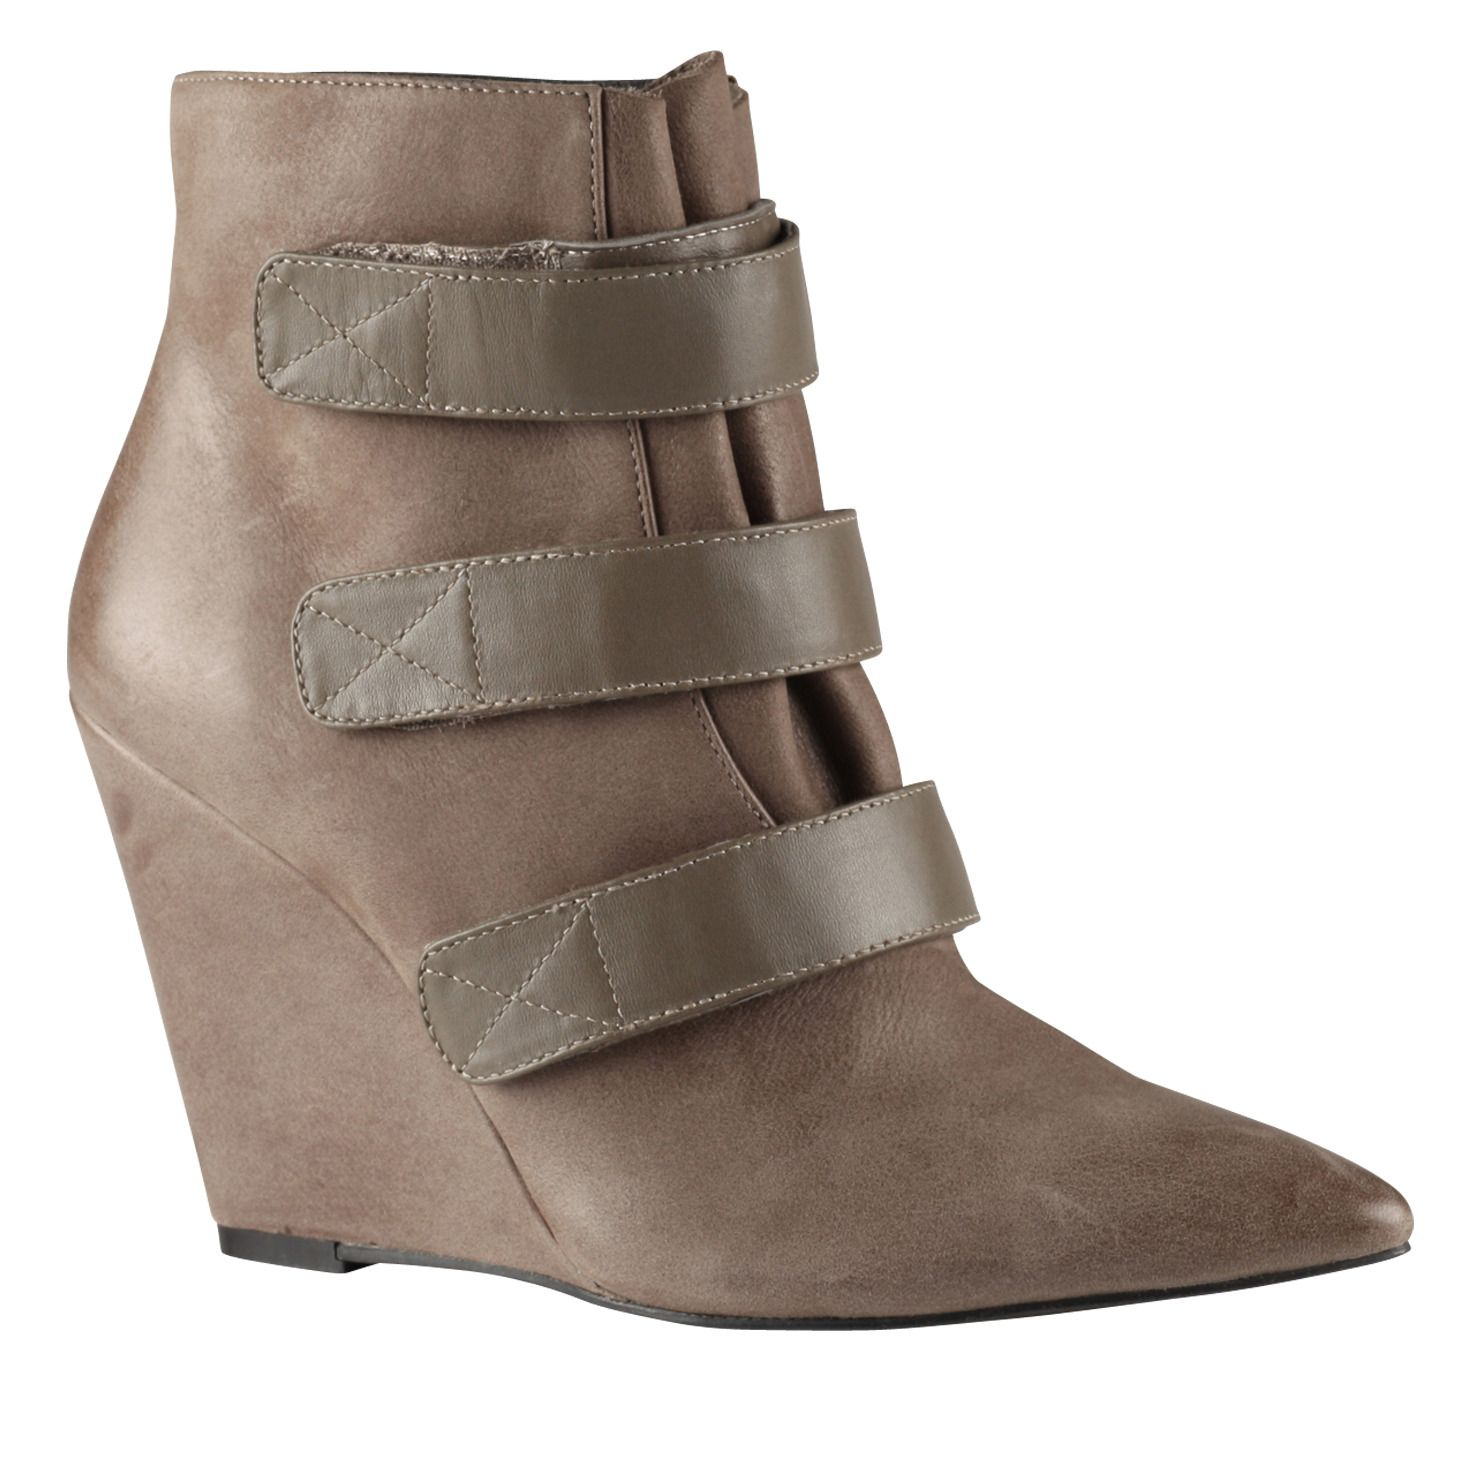 jacelyn s ankle boots boots for sale at aldo shoes